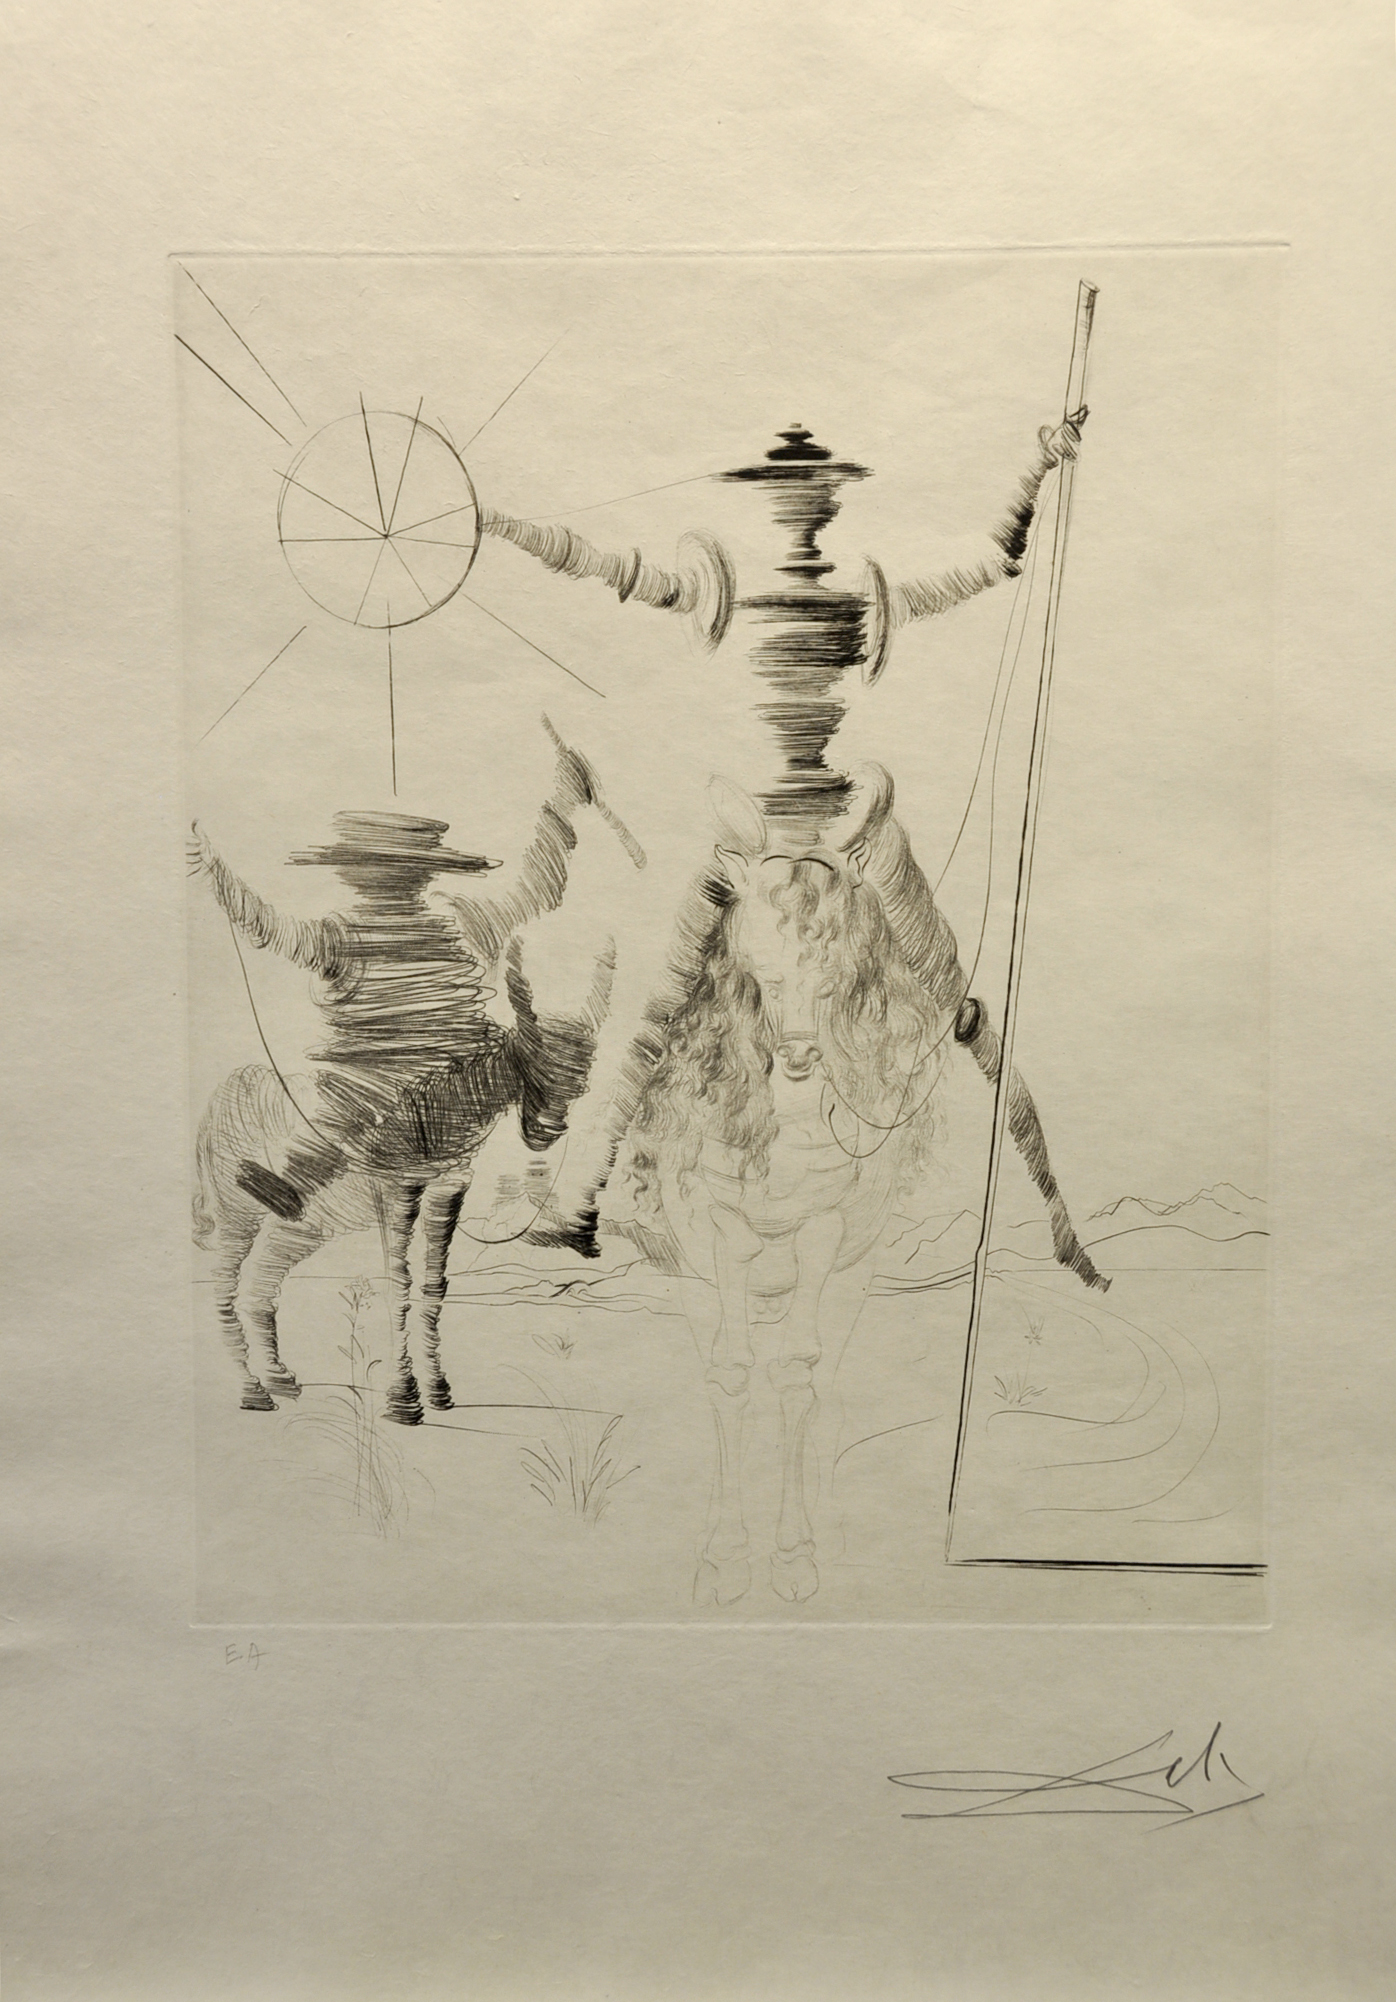 Salvador Dalí - Don Quichotte et Sancho Panca , 0611-008-541